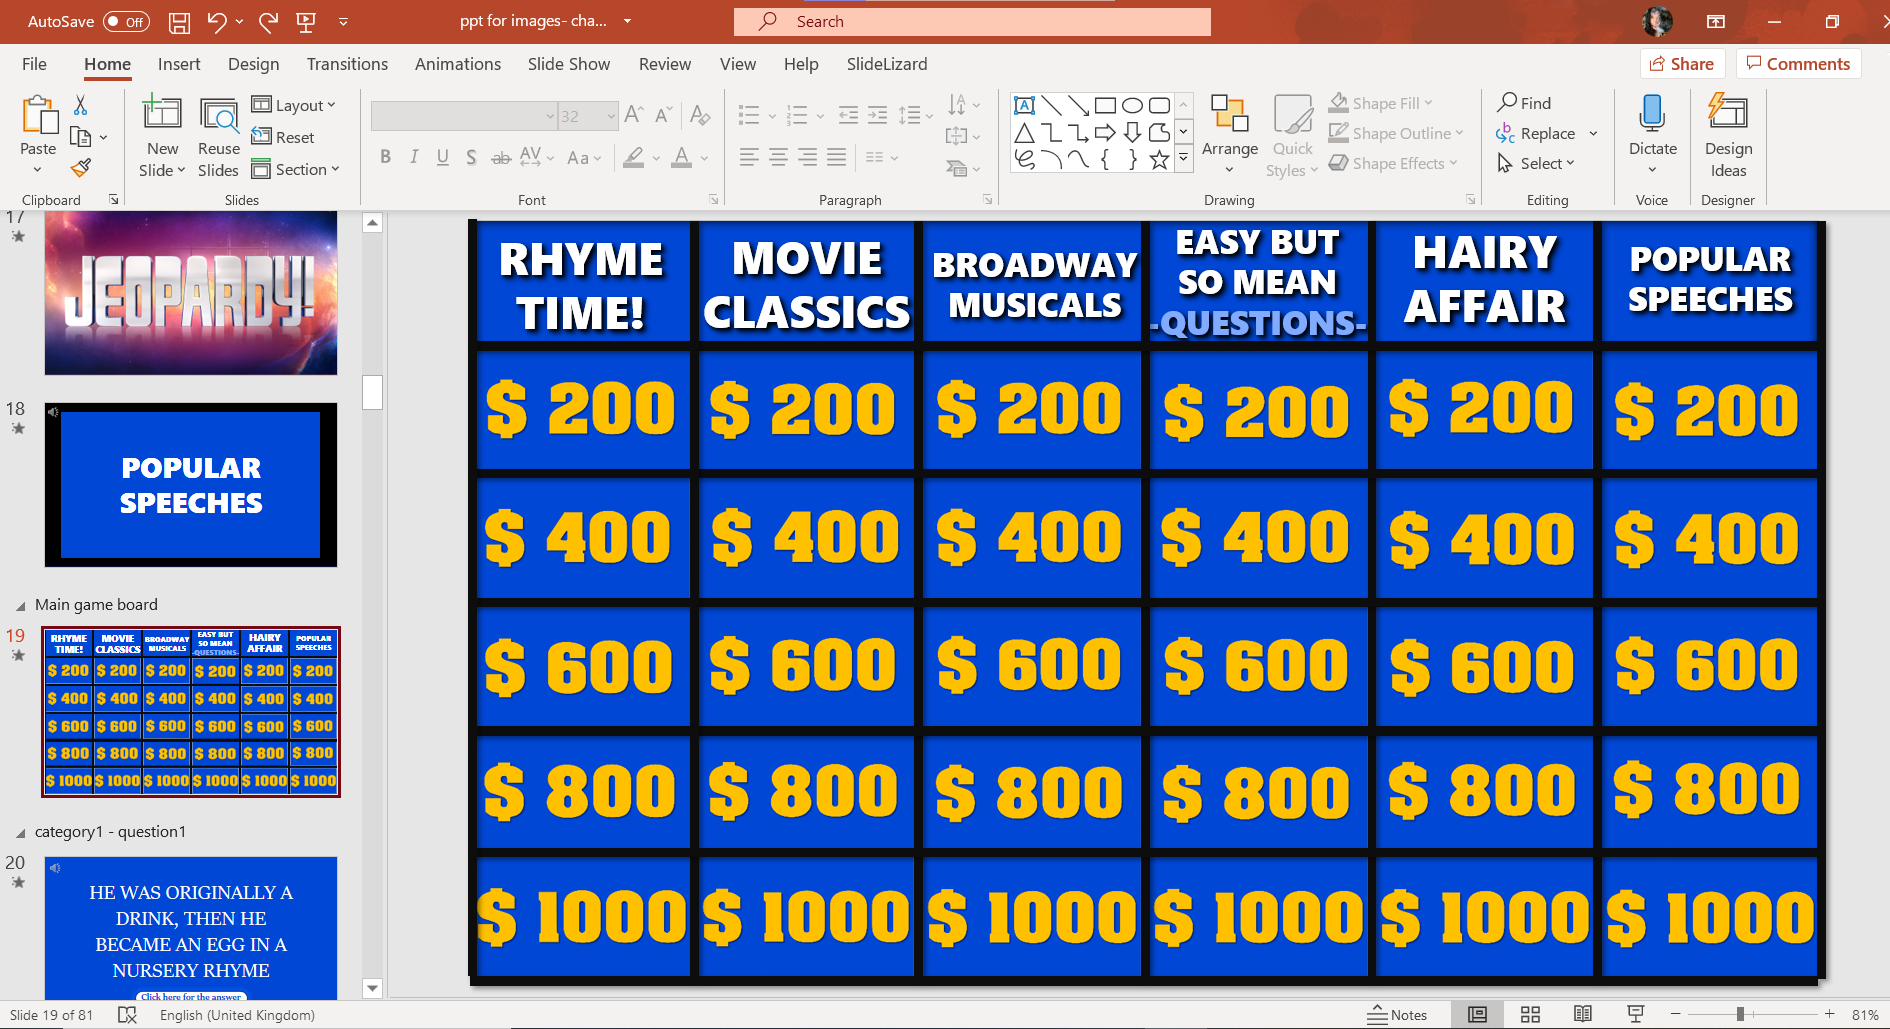 Jeopardy Game Template For Powerpoint 2021 Slidelizard